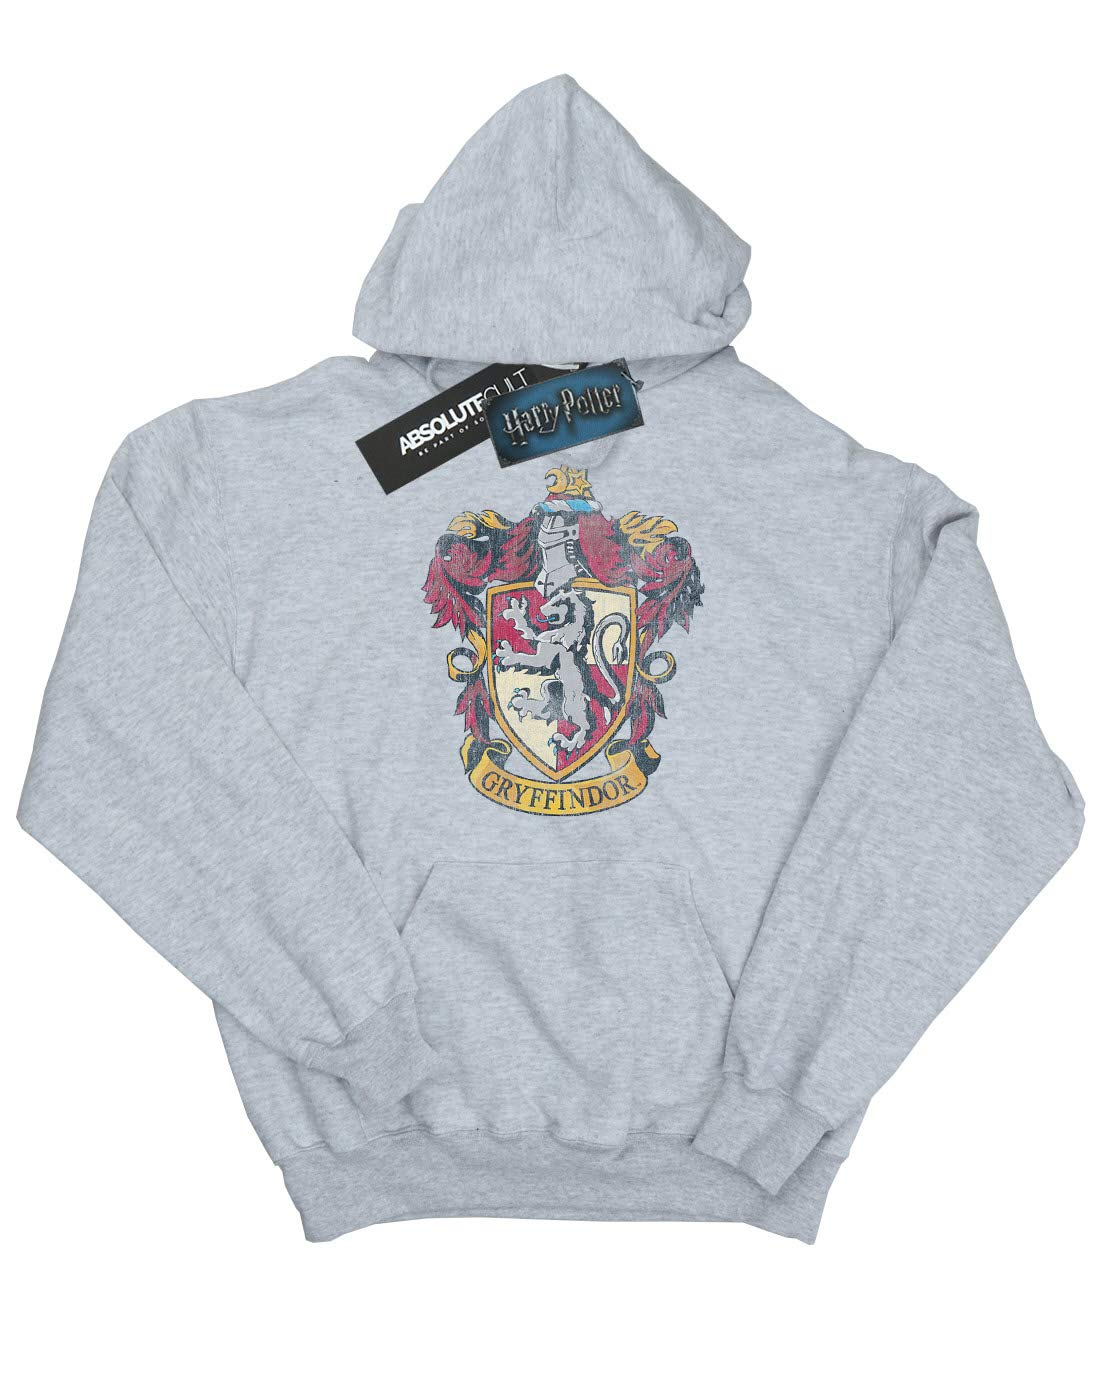 HARRY POTTER Girls Gryffindor Distressed Crest Hoodie 9-11 Years Sport Grey by HARRY POTTER (Image #2)